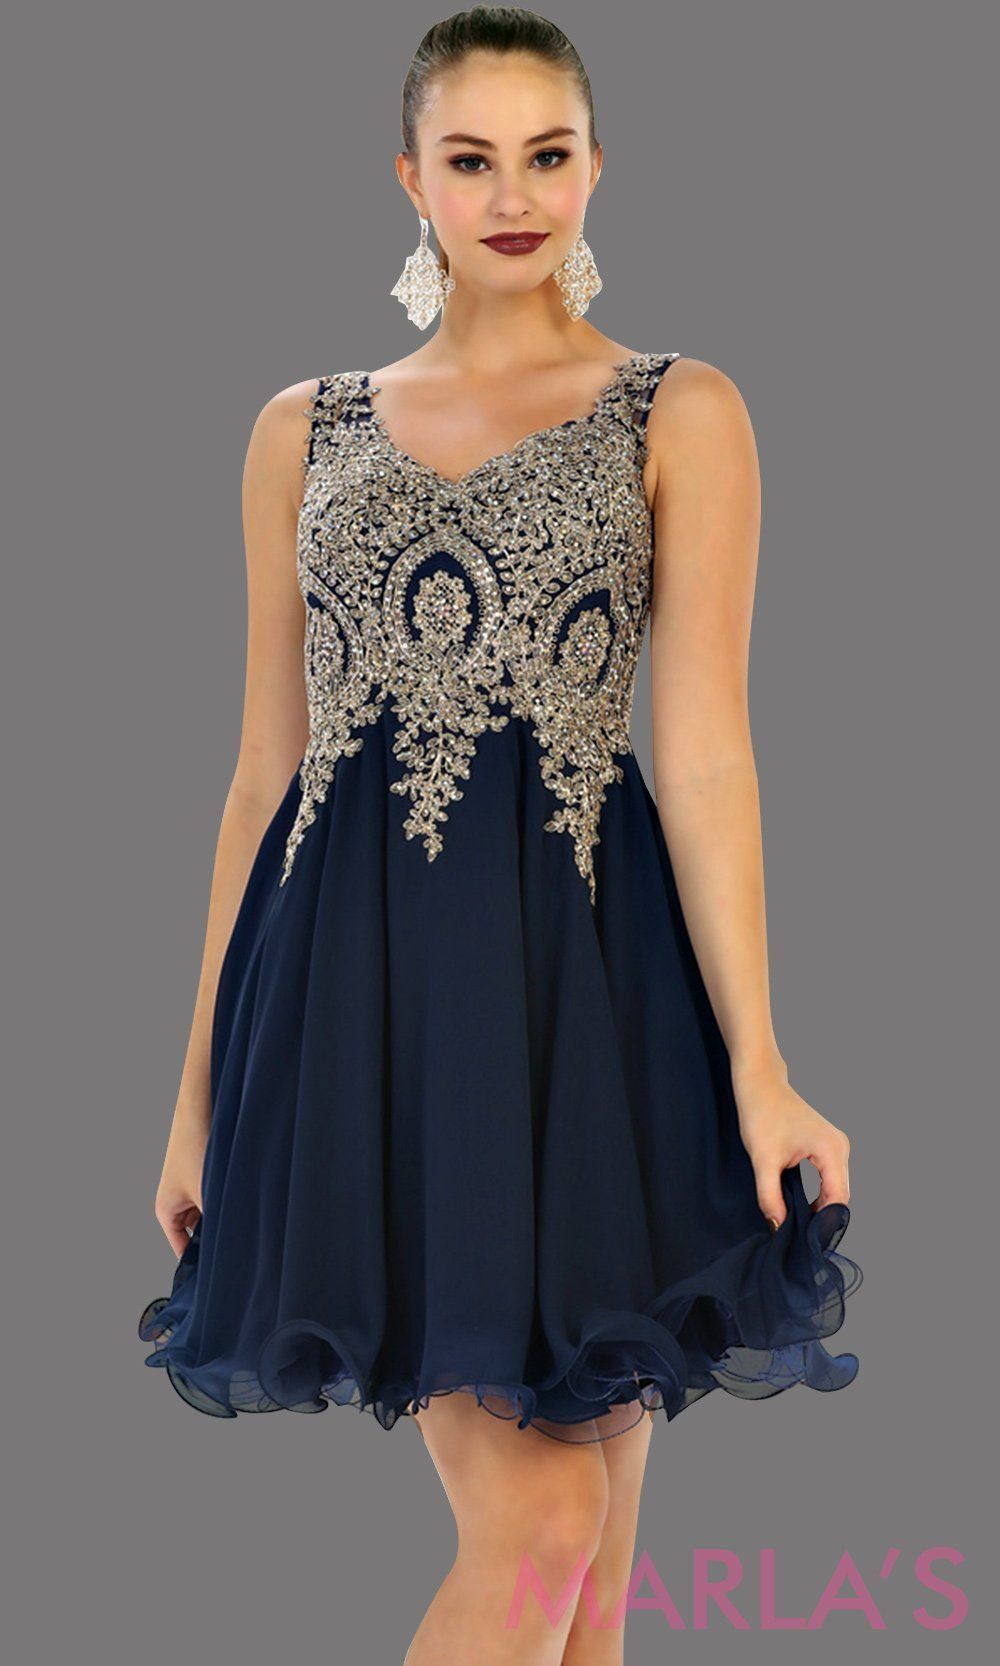 b98be09c68 Short flowy navy dress with gold lace detail on the bodice. This is a  perfect dark blue grade 8 graduation dress